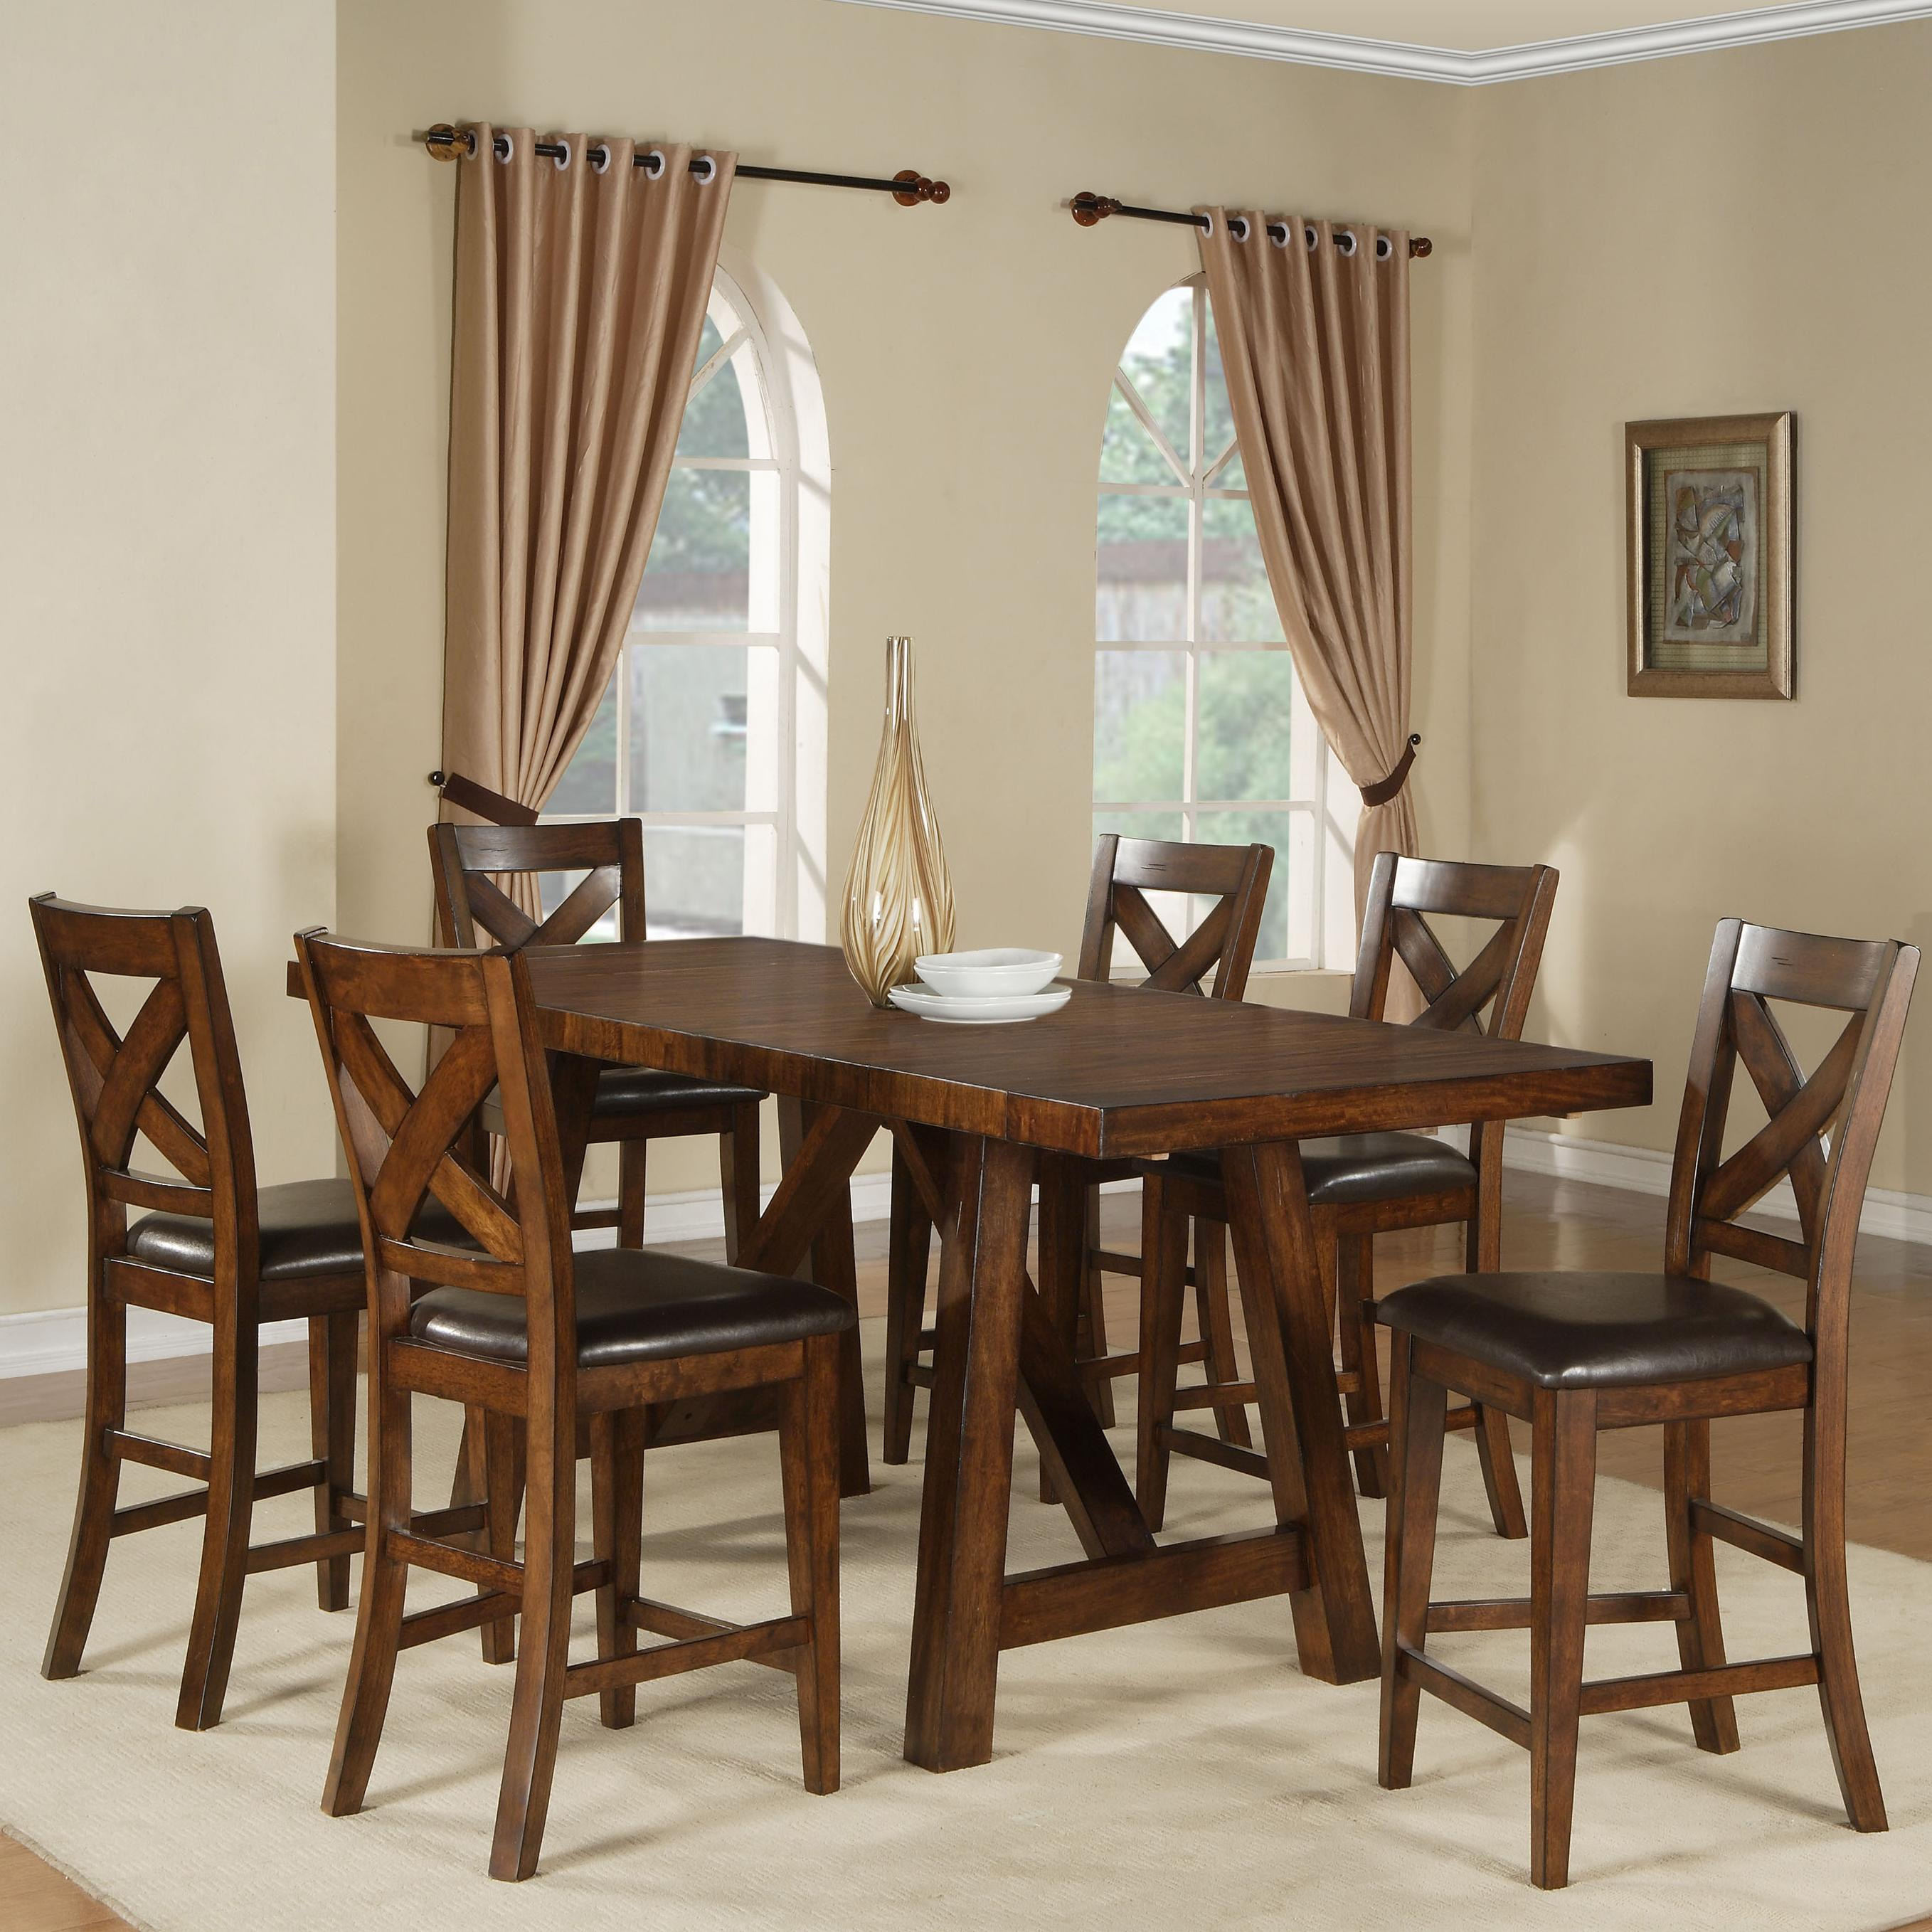 Merveilleux Holland House Lakeshore 7 Piece Counter Height Table And Stool Set